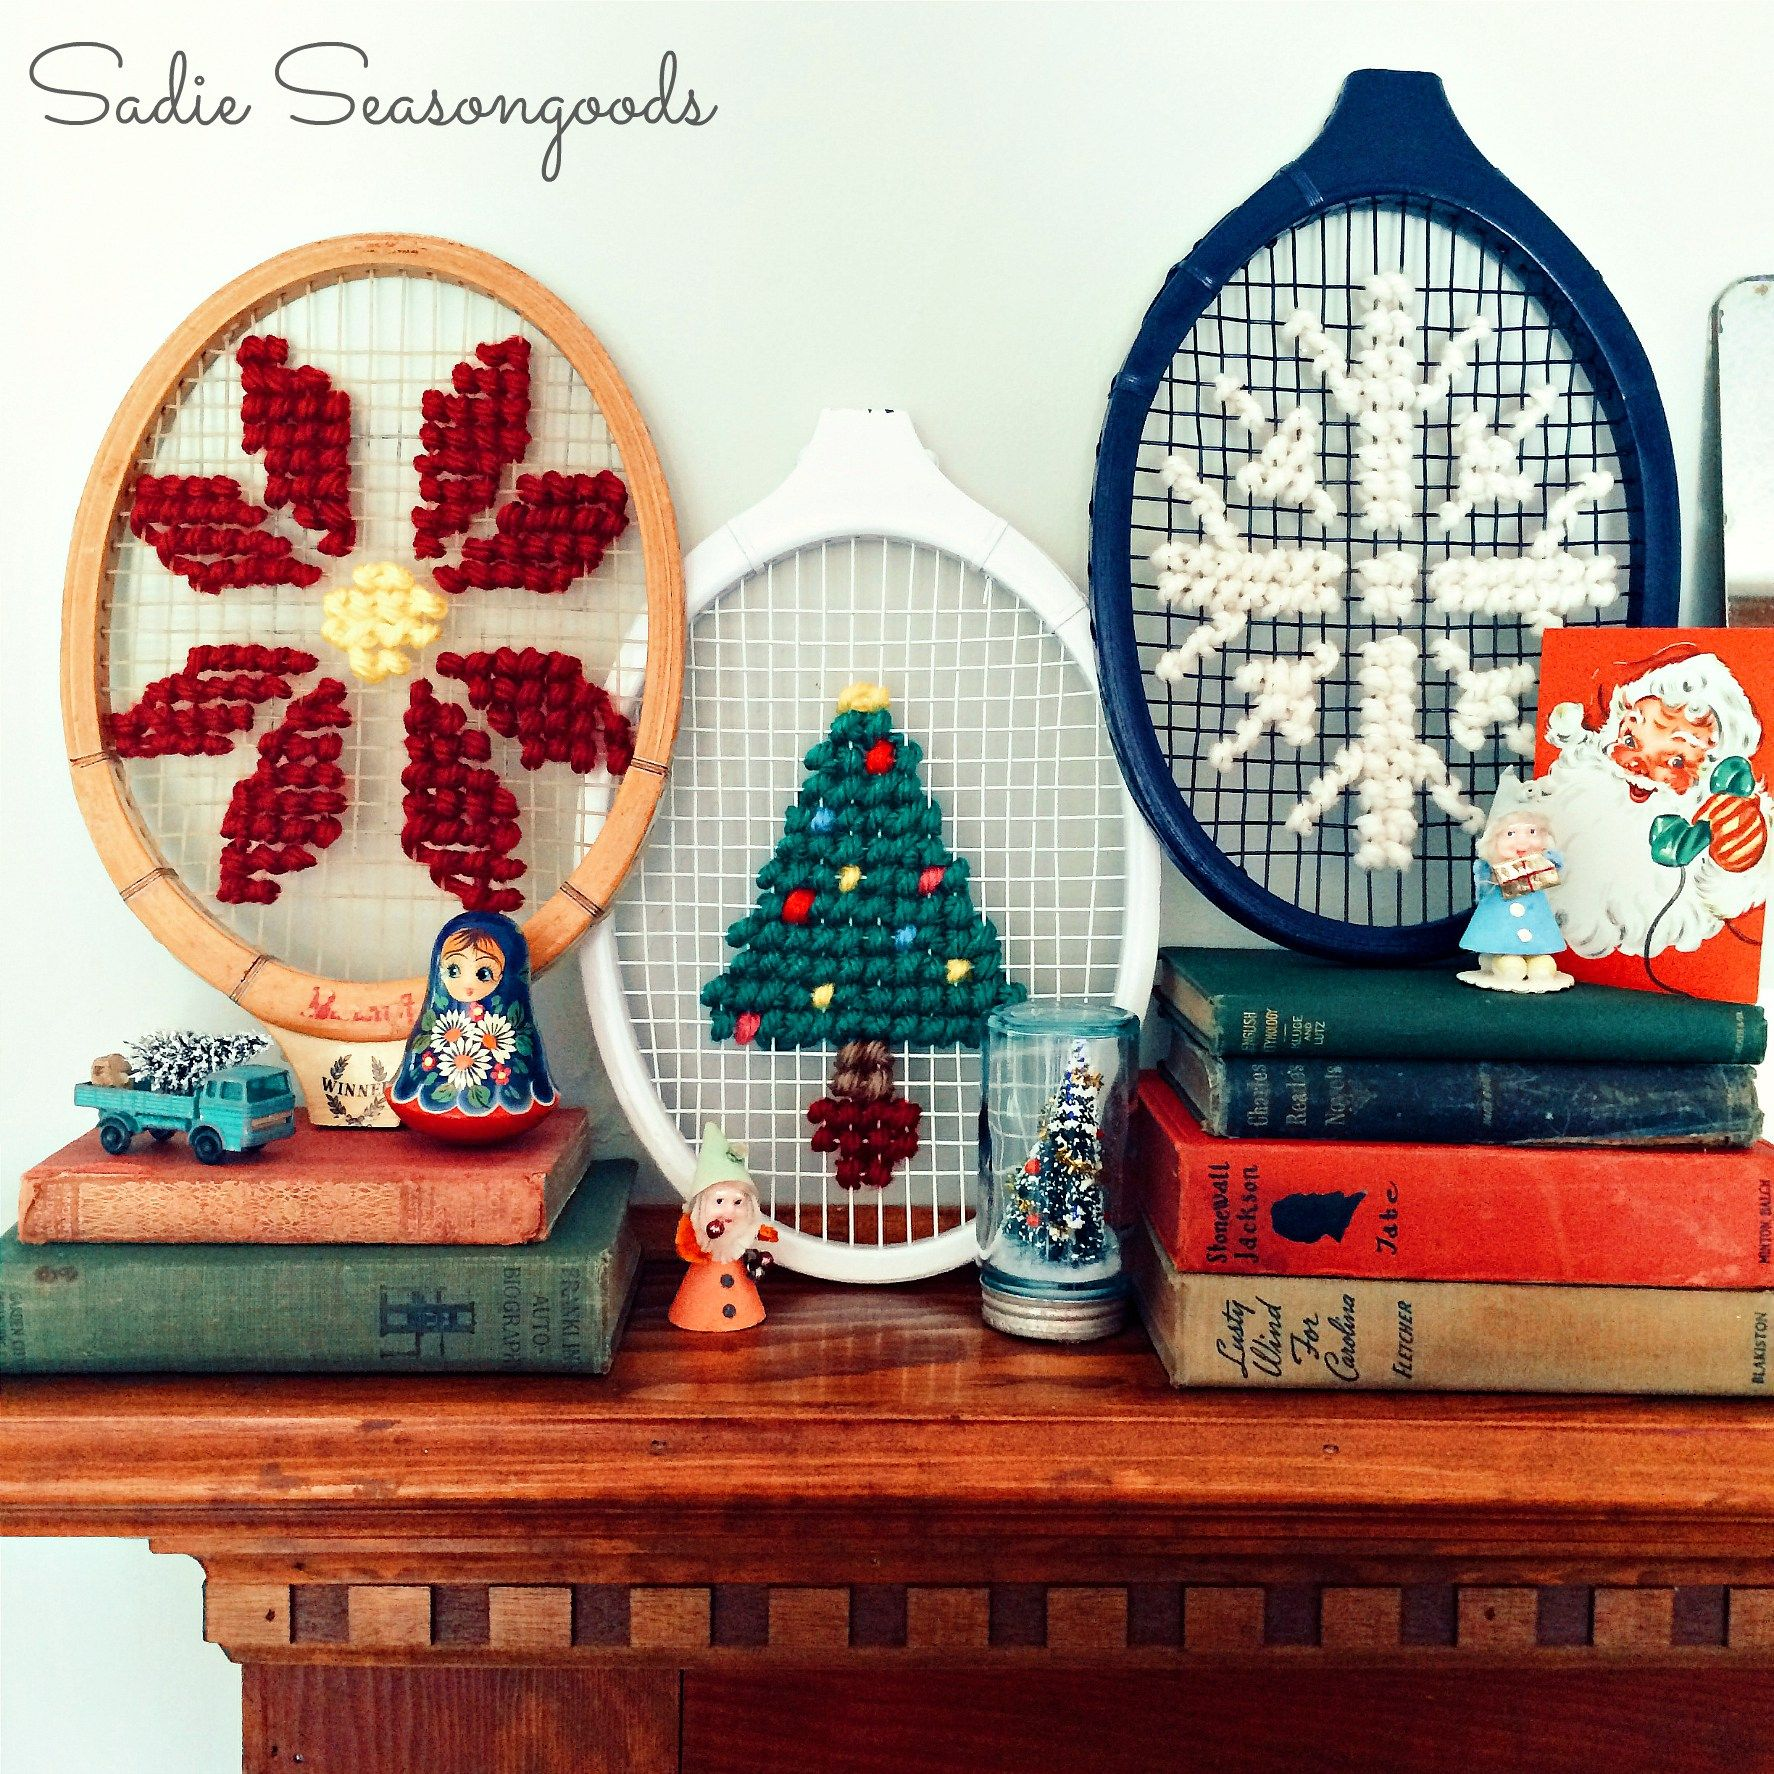 Upcycling Ideas For Used Sports Equipment Used Sporting Goods Vintage Christmas Crafts Christmas Cross Stitch Christmas Cross